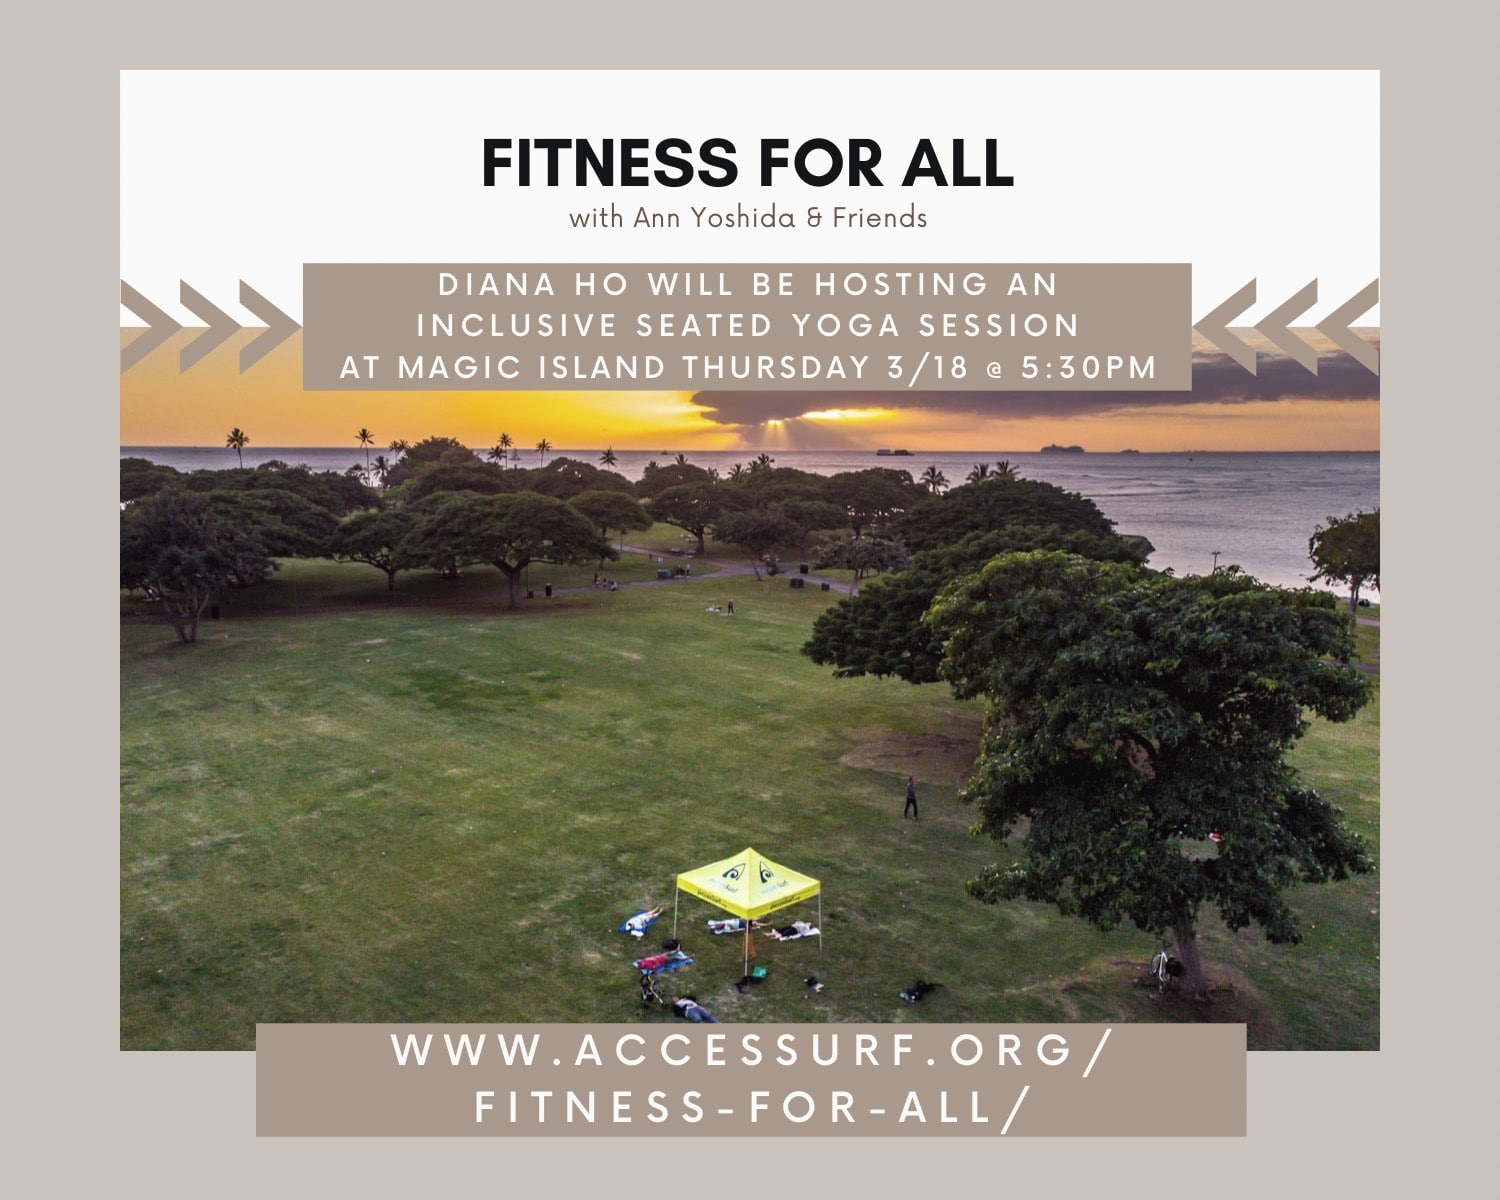 fitness for all diana ho